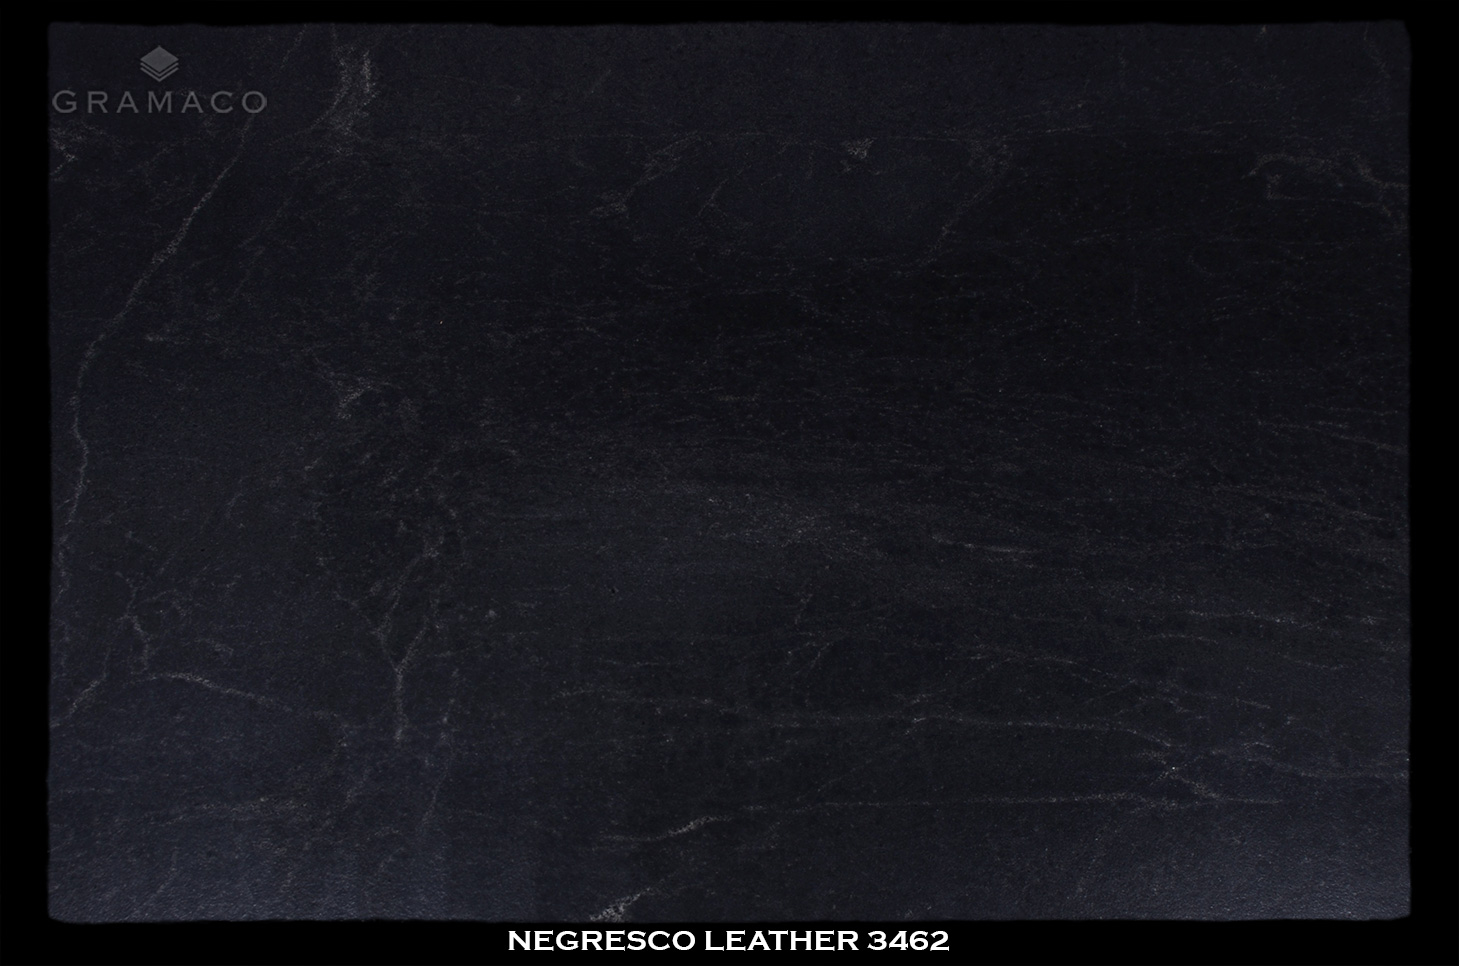 NEGRESCO-LEATHER-3462-slab